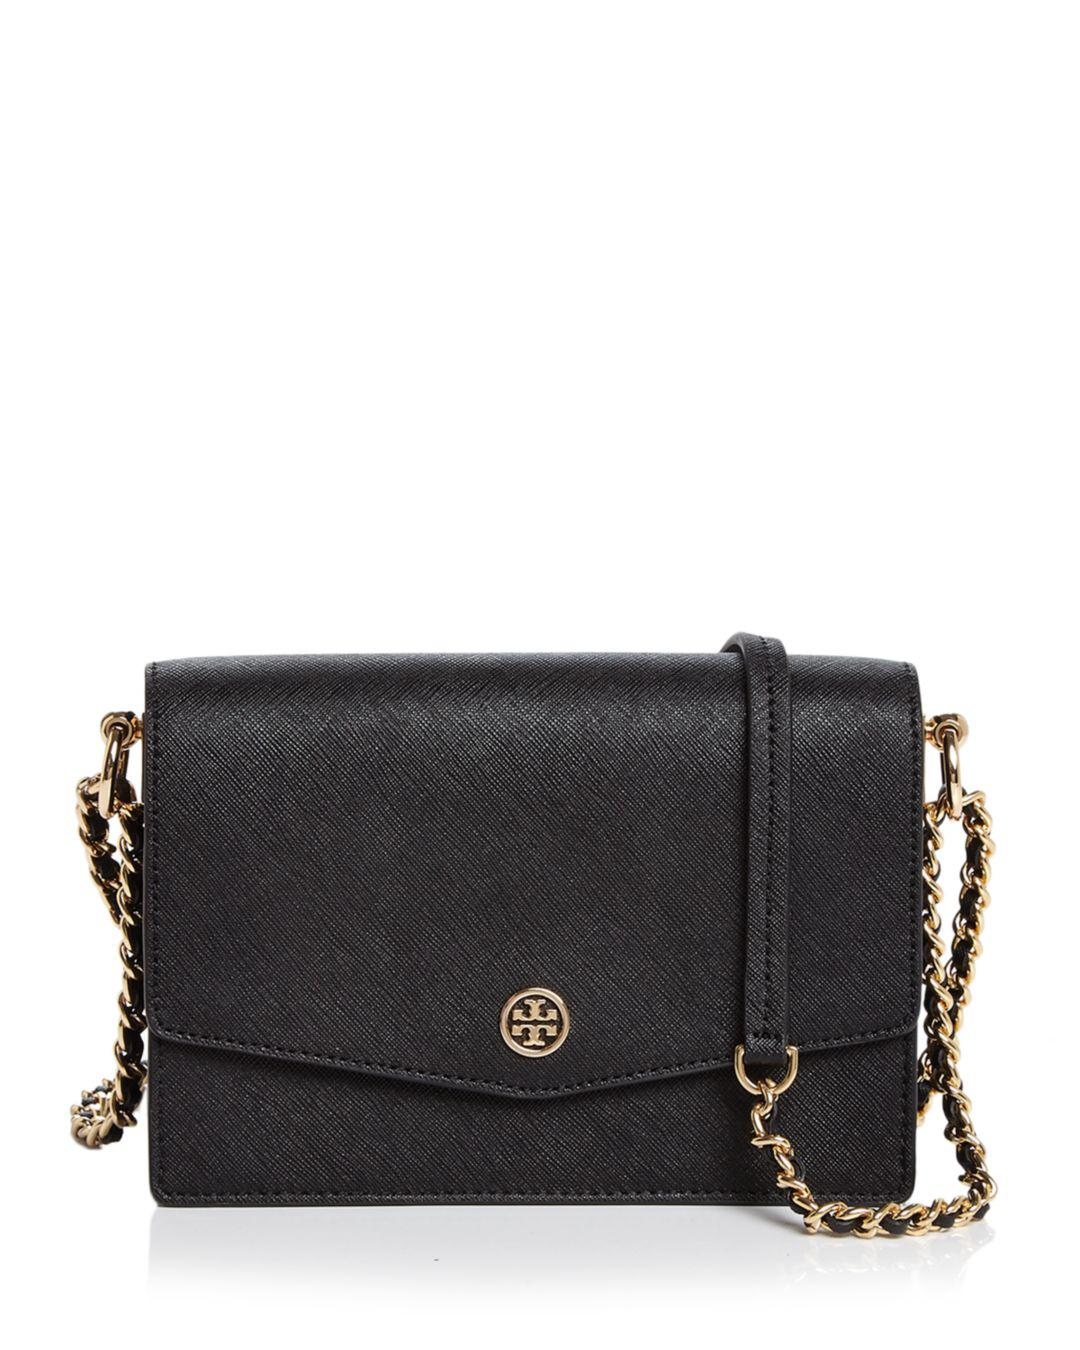 53b1b17b8a1a Tory Burch. Women s Black Robinson Mini Leather Convertible Shoulder Bag